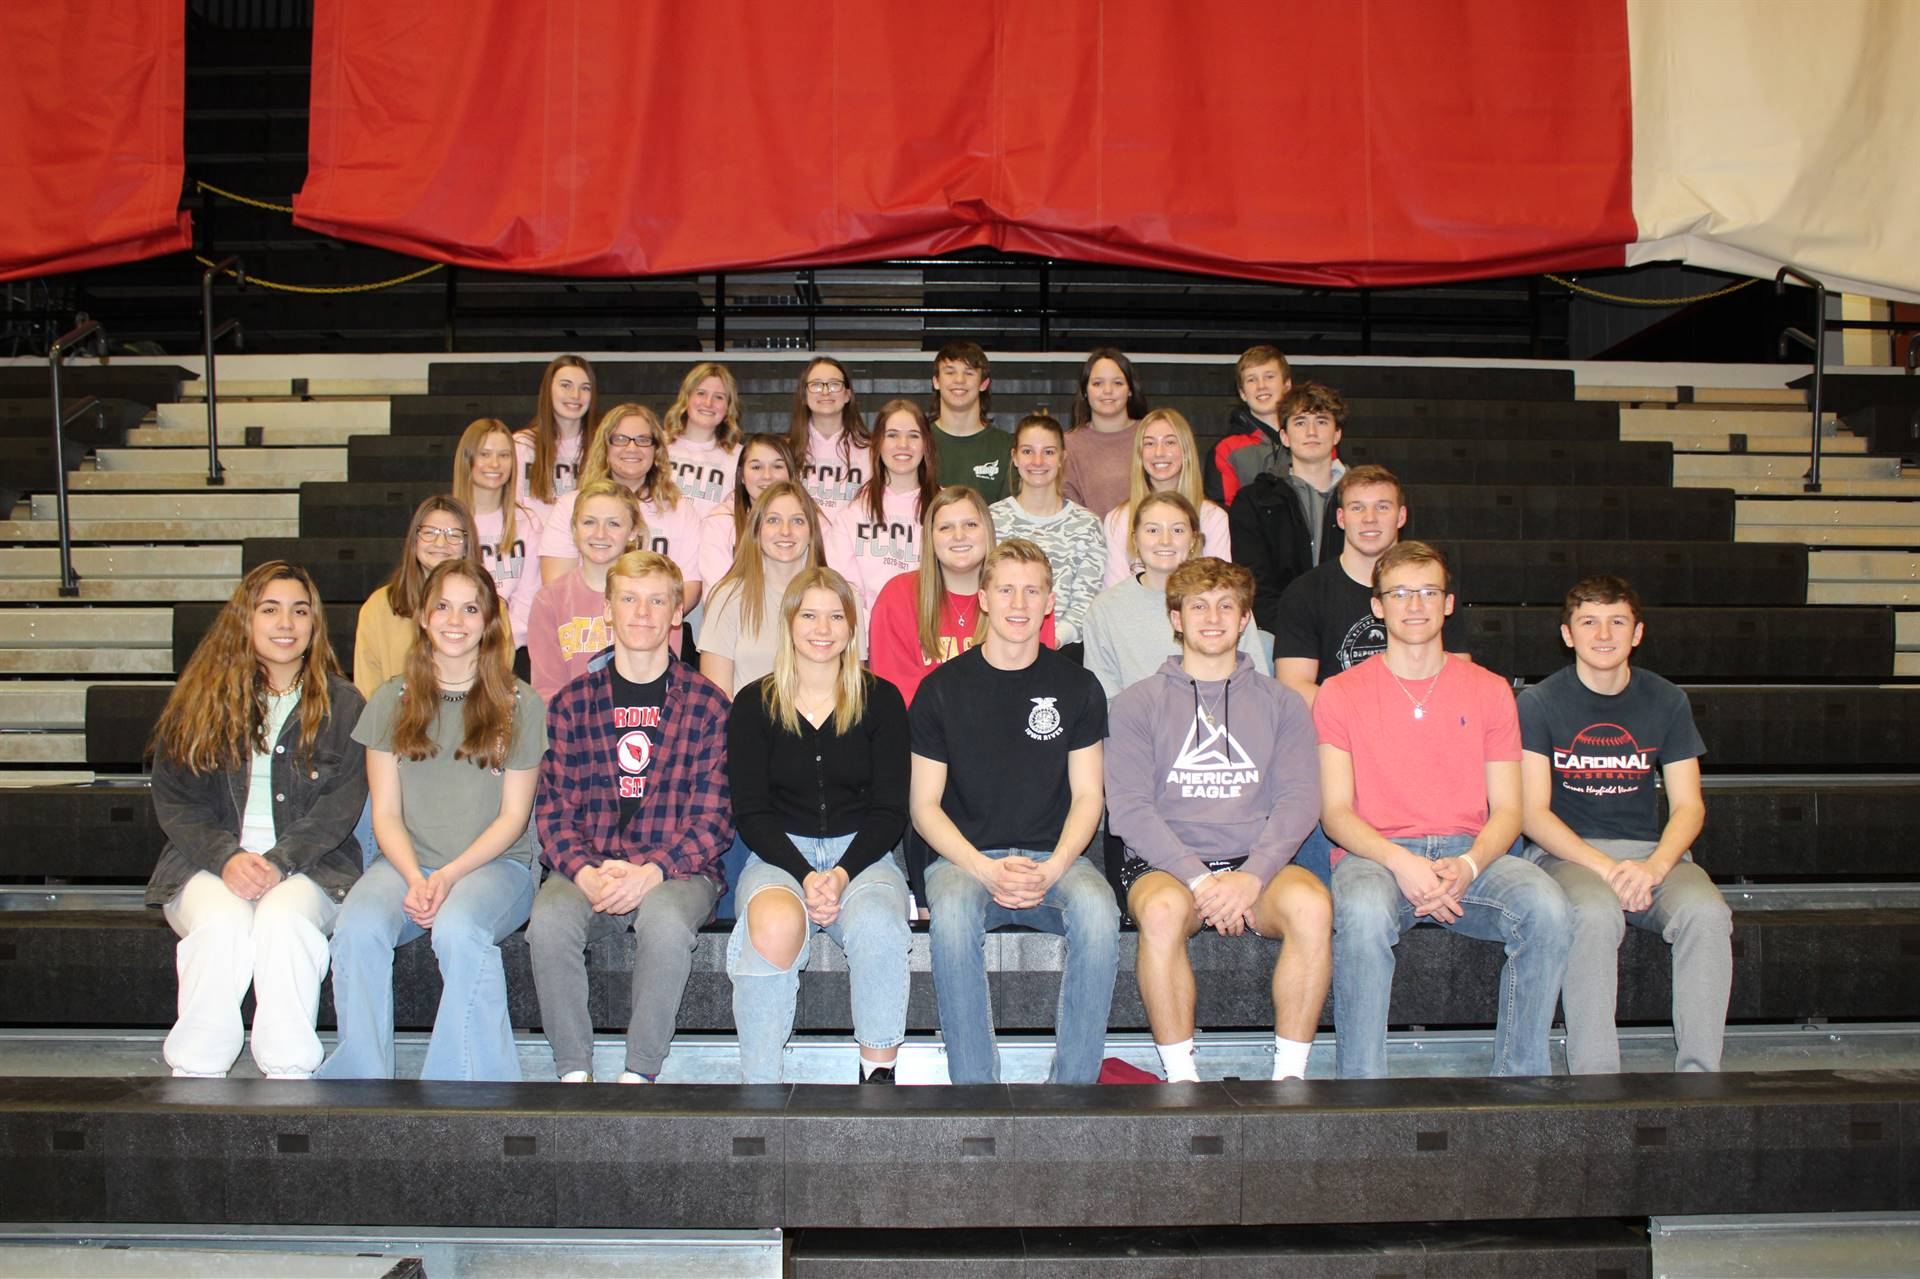 student council students posing for a group photo on risers